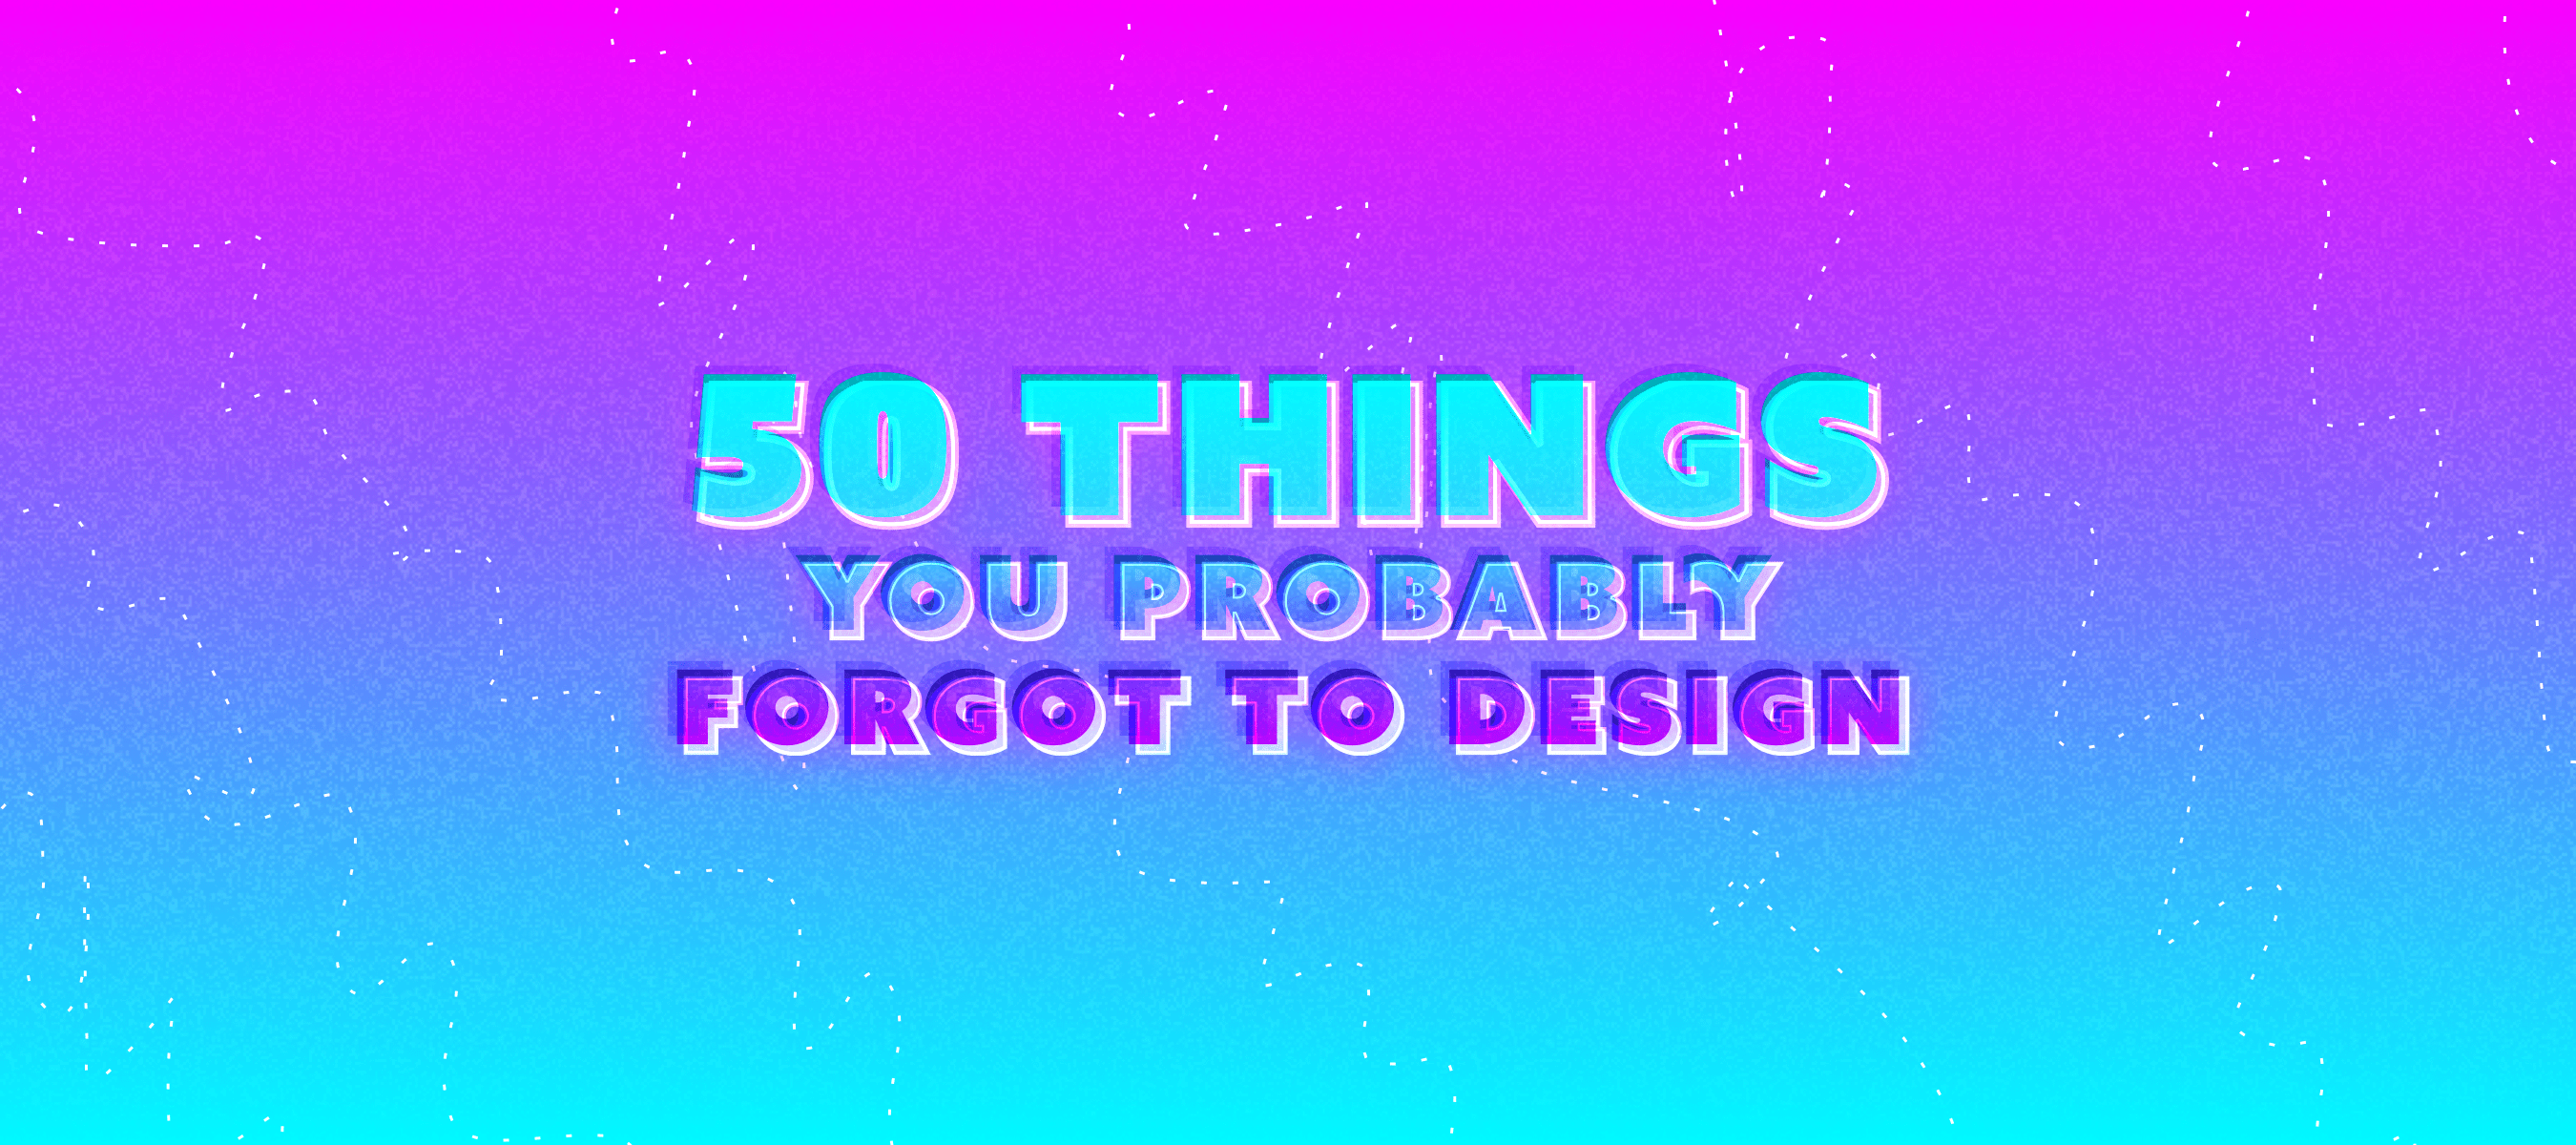 things you probably forgot to design